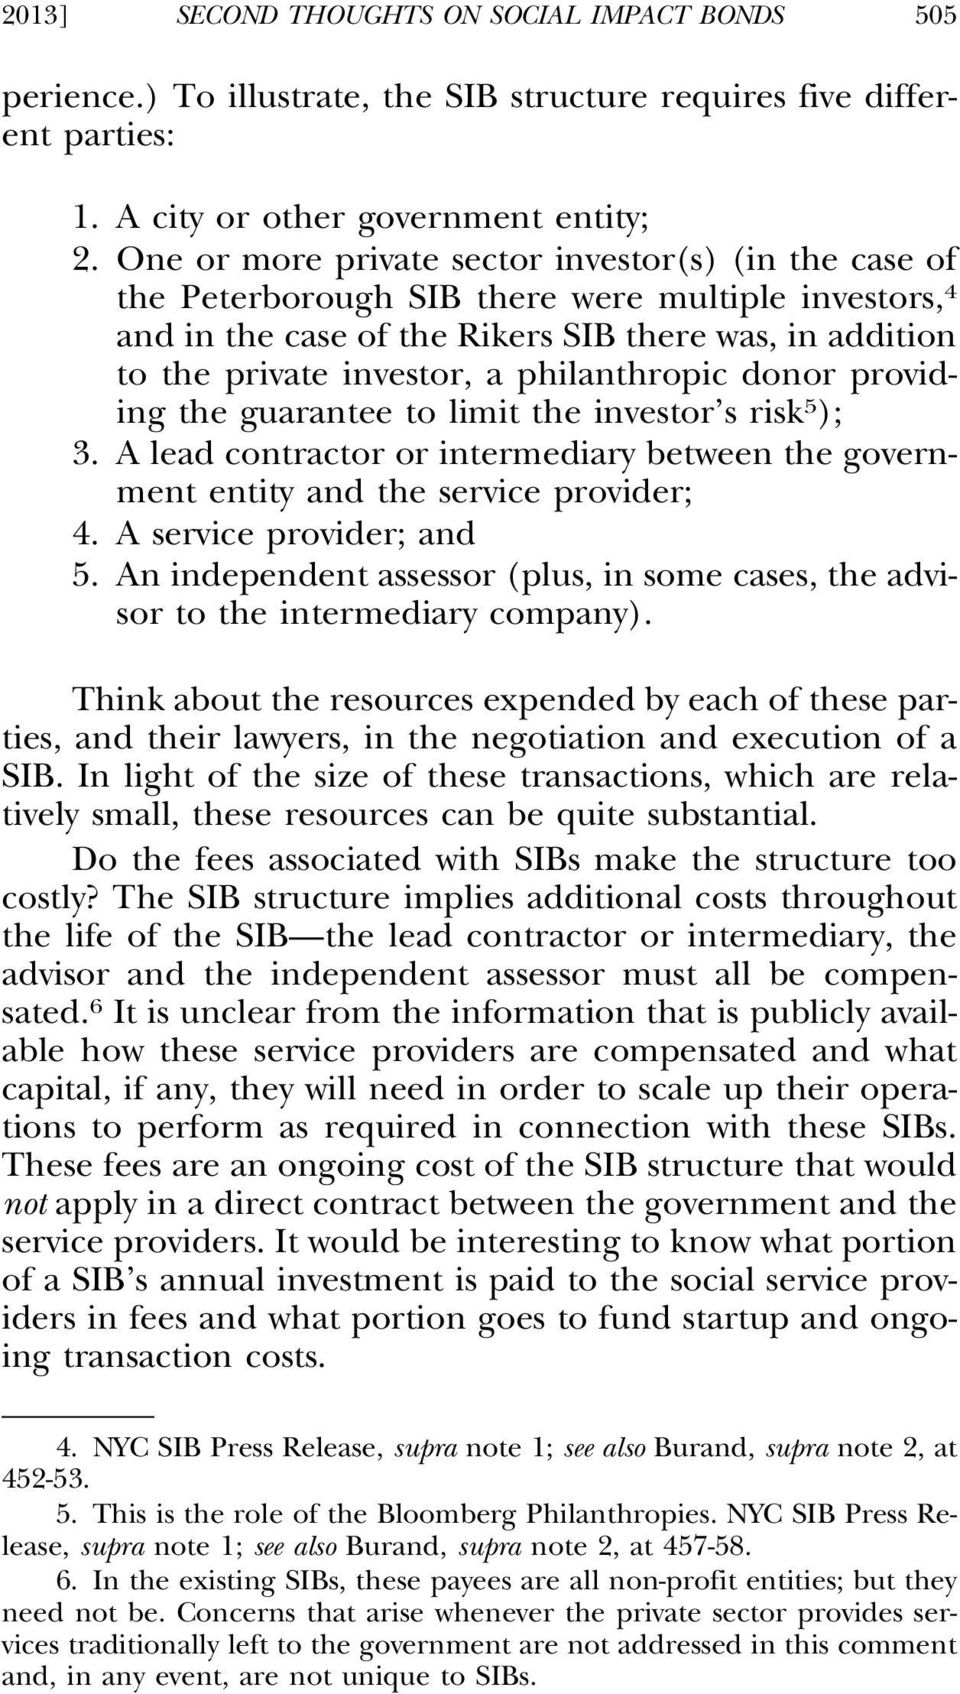 philanthropic donor providing the guarantee to limit the investor s risk 5 ); 3. A lead contractor or intermediary between the government entity and the service provider; 4. A service provider; and 5.